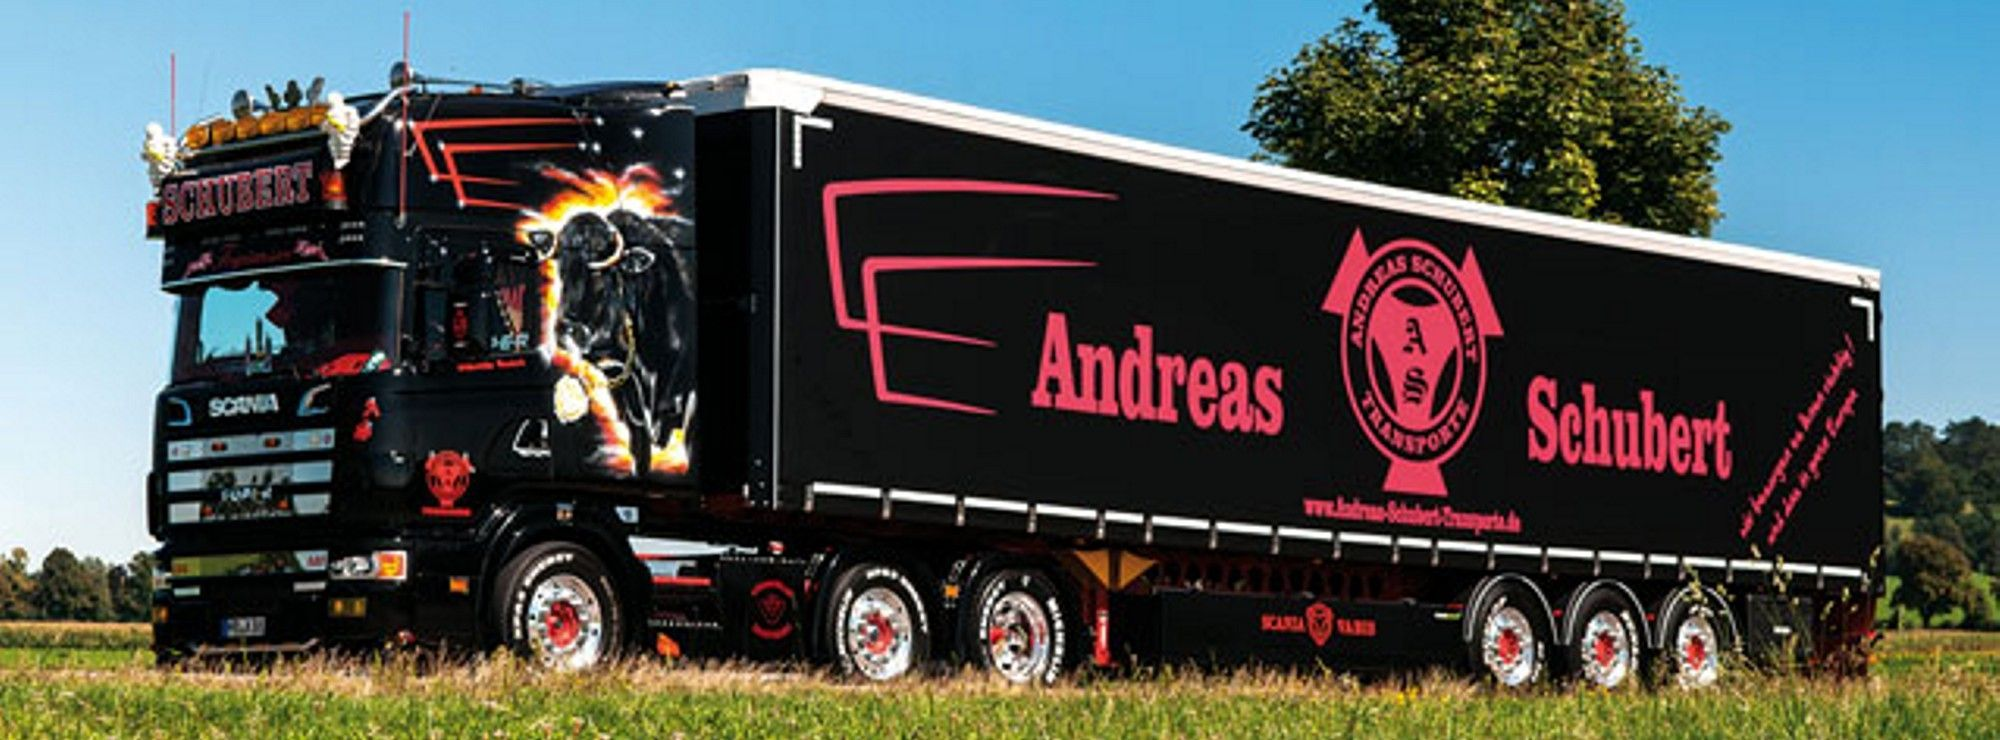 scania andreas schubert tegernsee king of the road trucks lkw pinterest. Black Bedroom Furniture Sets. Home Design Ideas